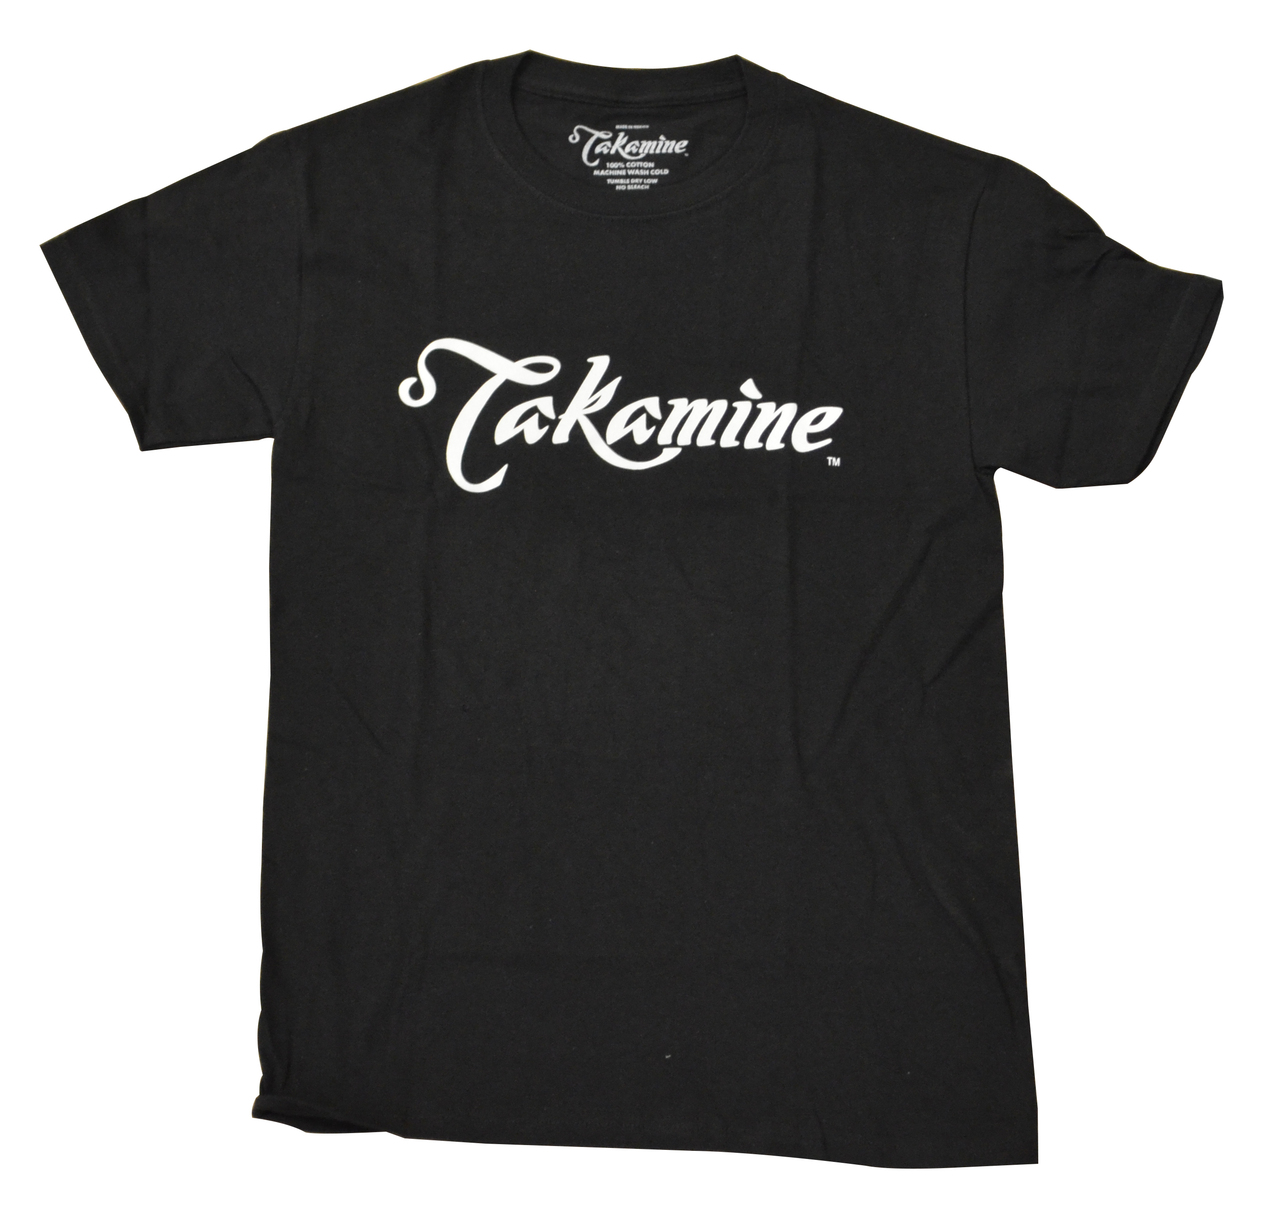 Takamine Logo Tee Shirt - Black Small